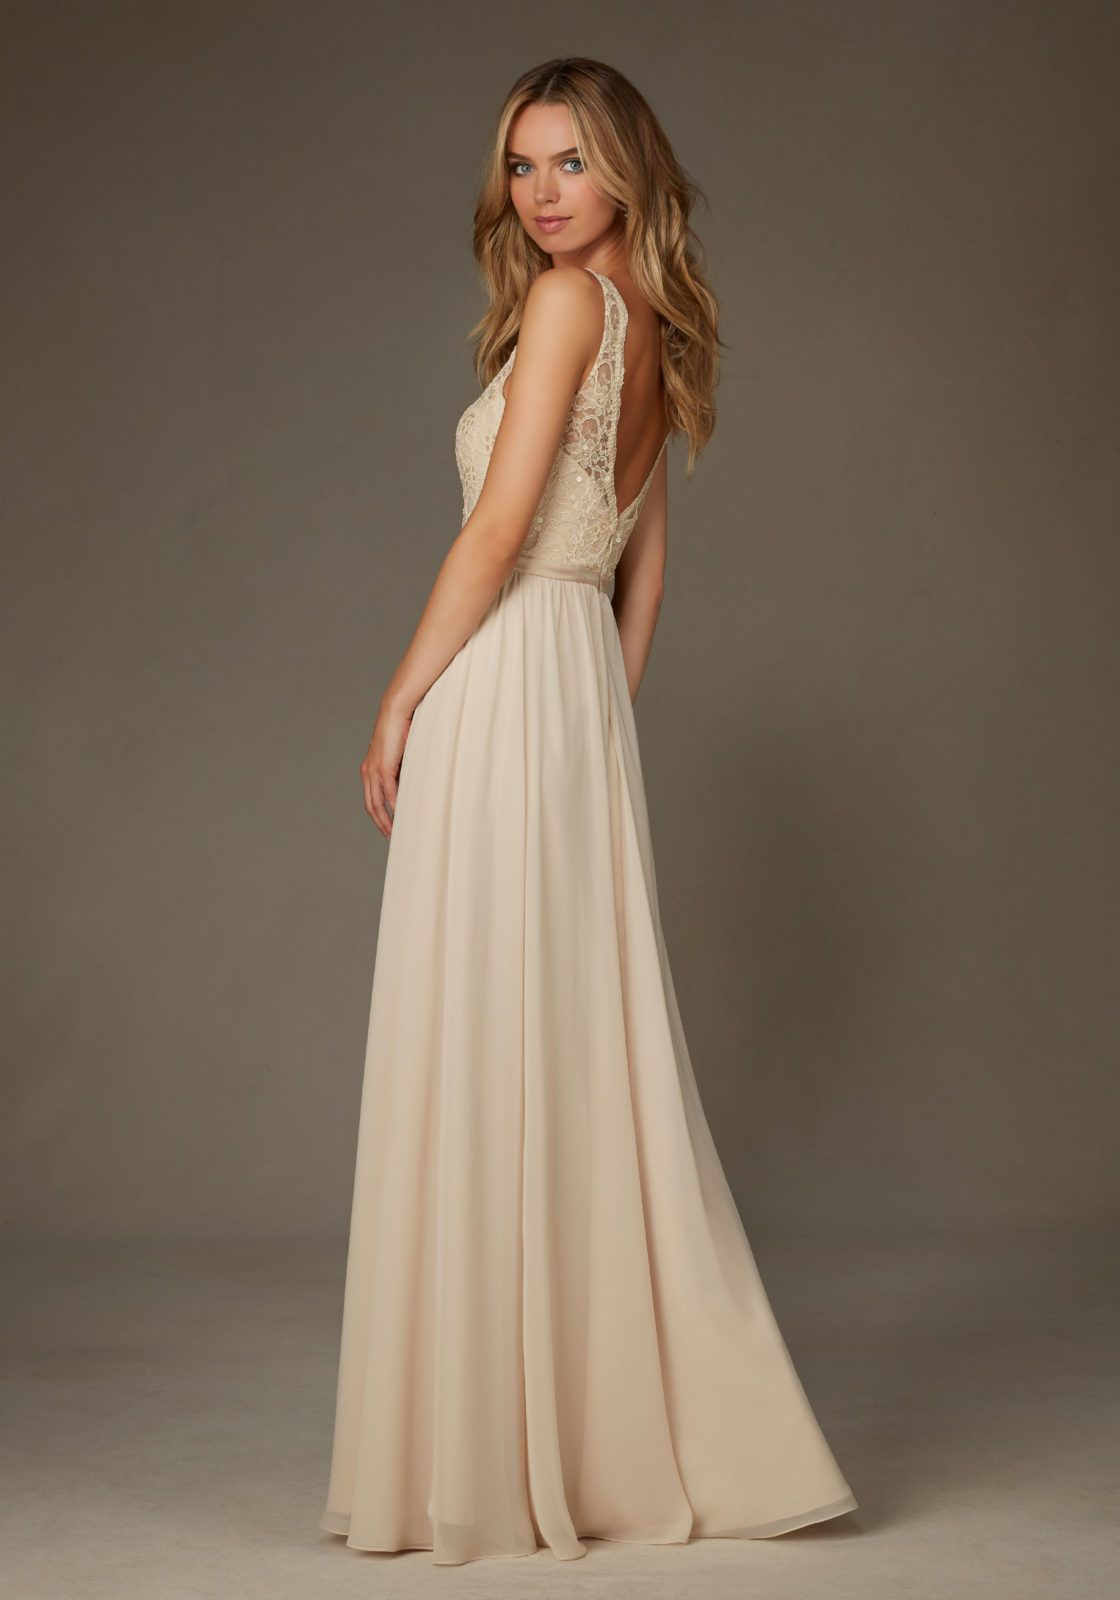 Elegant bridesmaids dress featuring a beaded lace bodice with